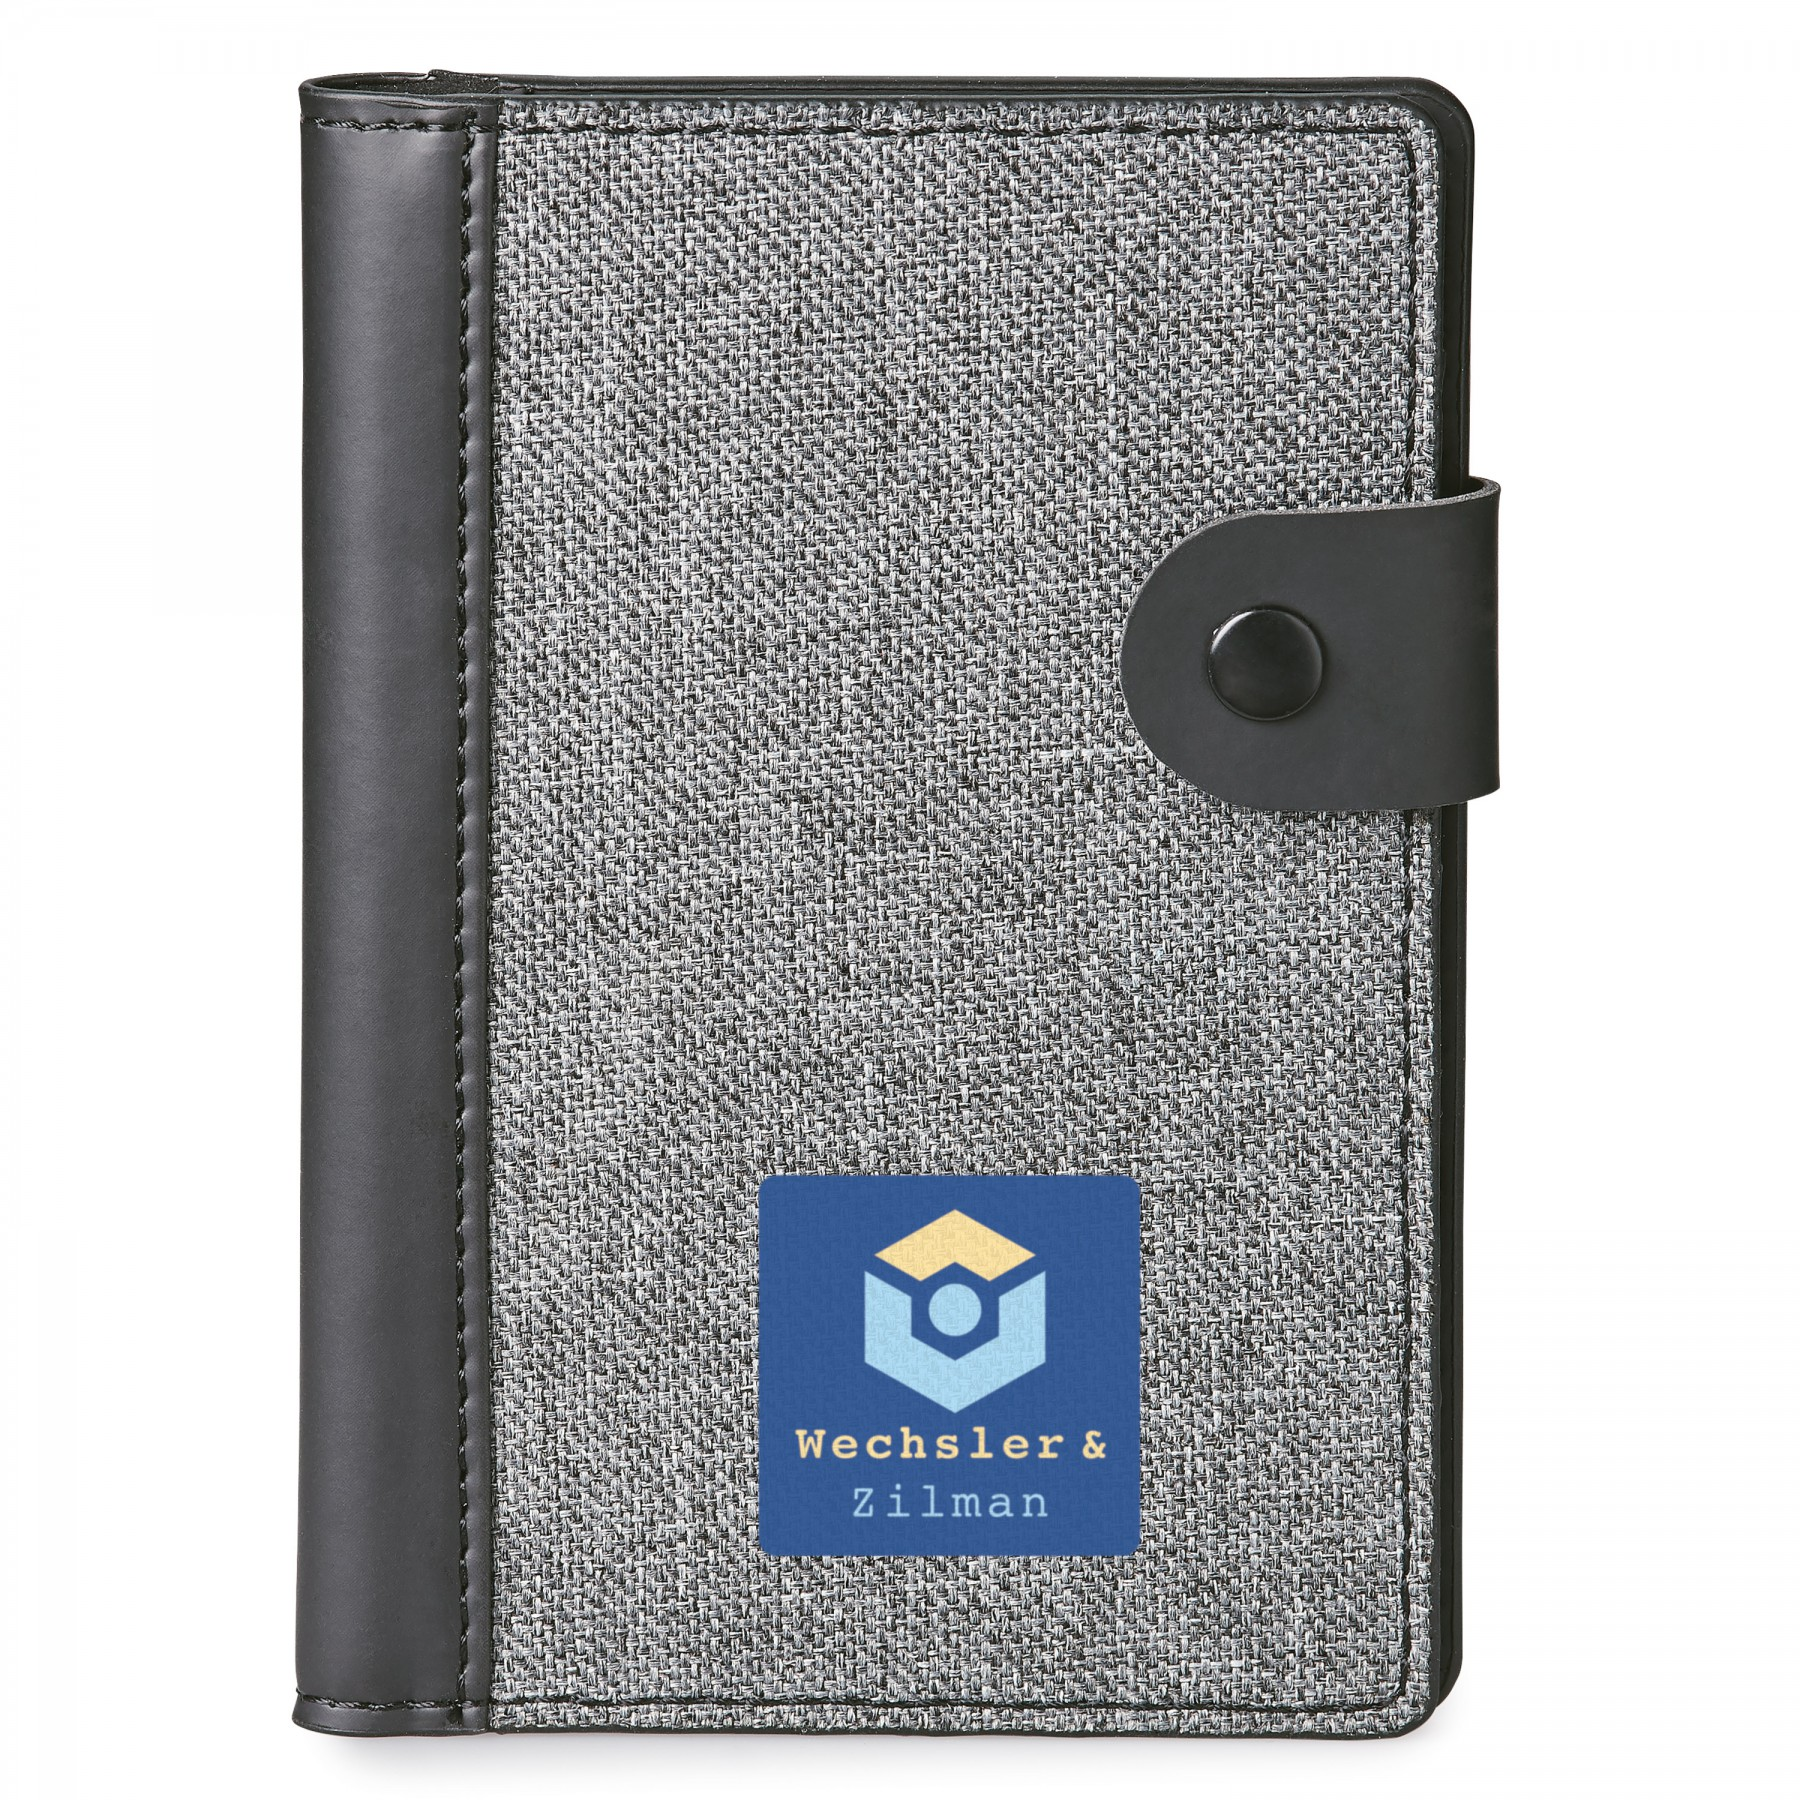 Nomad Rfid Passport Holder With Memo Pad, ST156, Full Colour Imprint